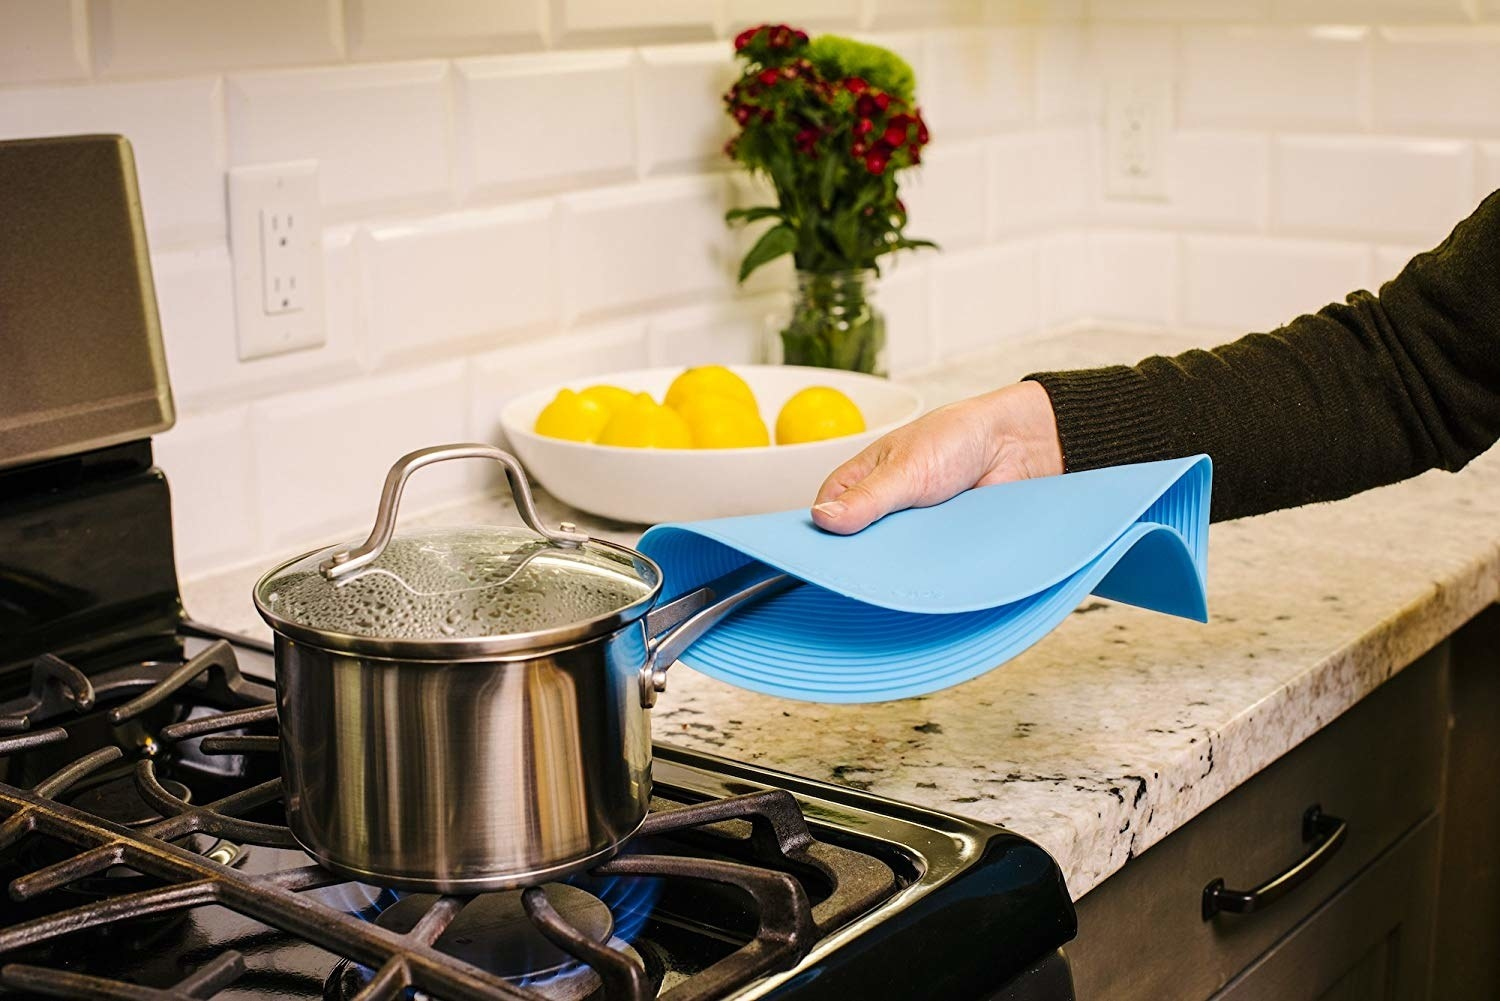 handing using large circular silicone grabber to grab a cooking pot's handle